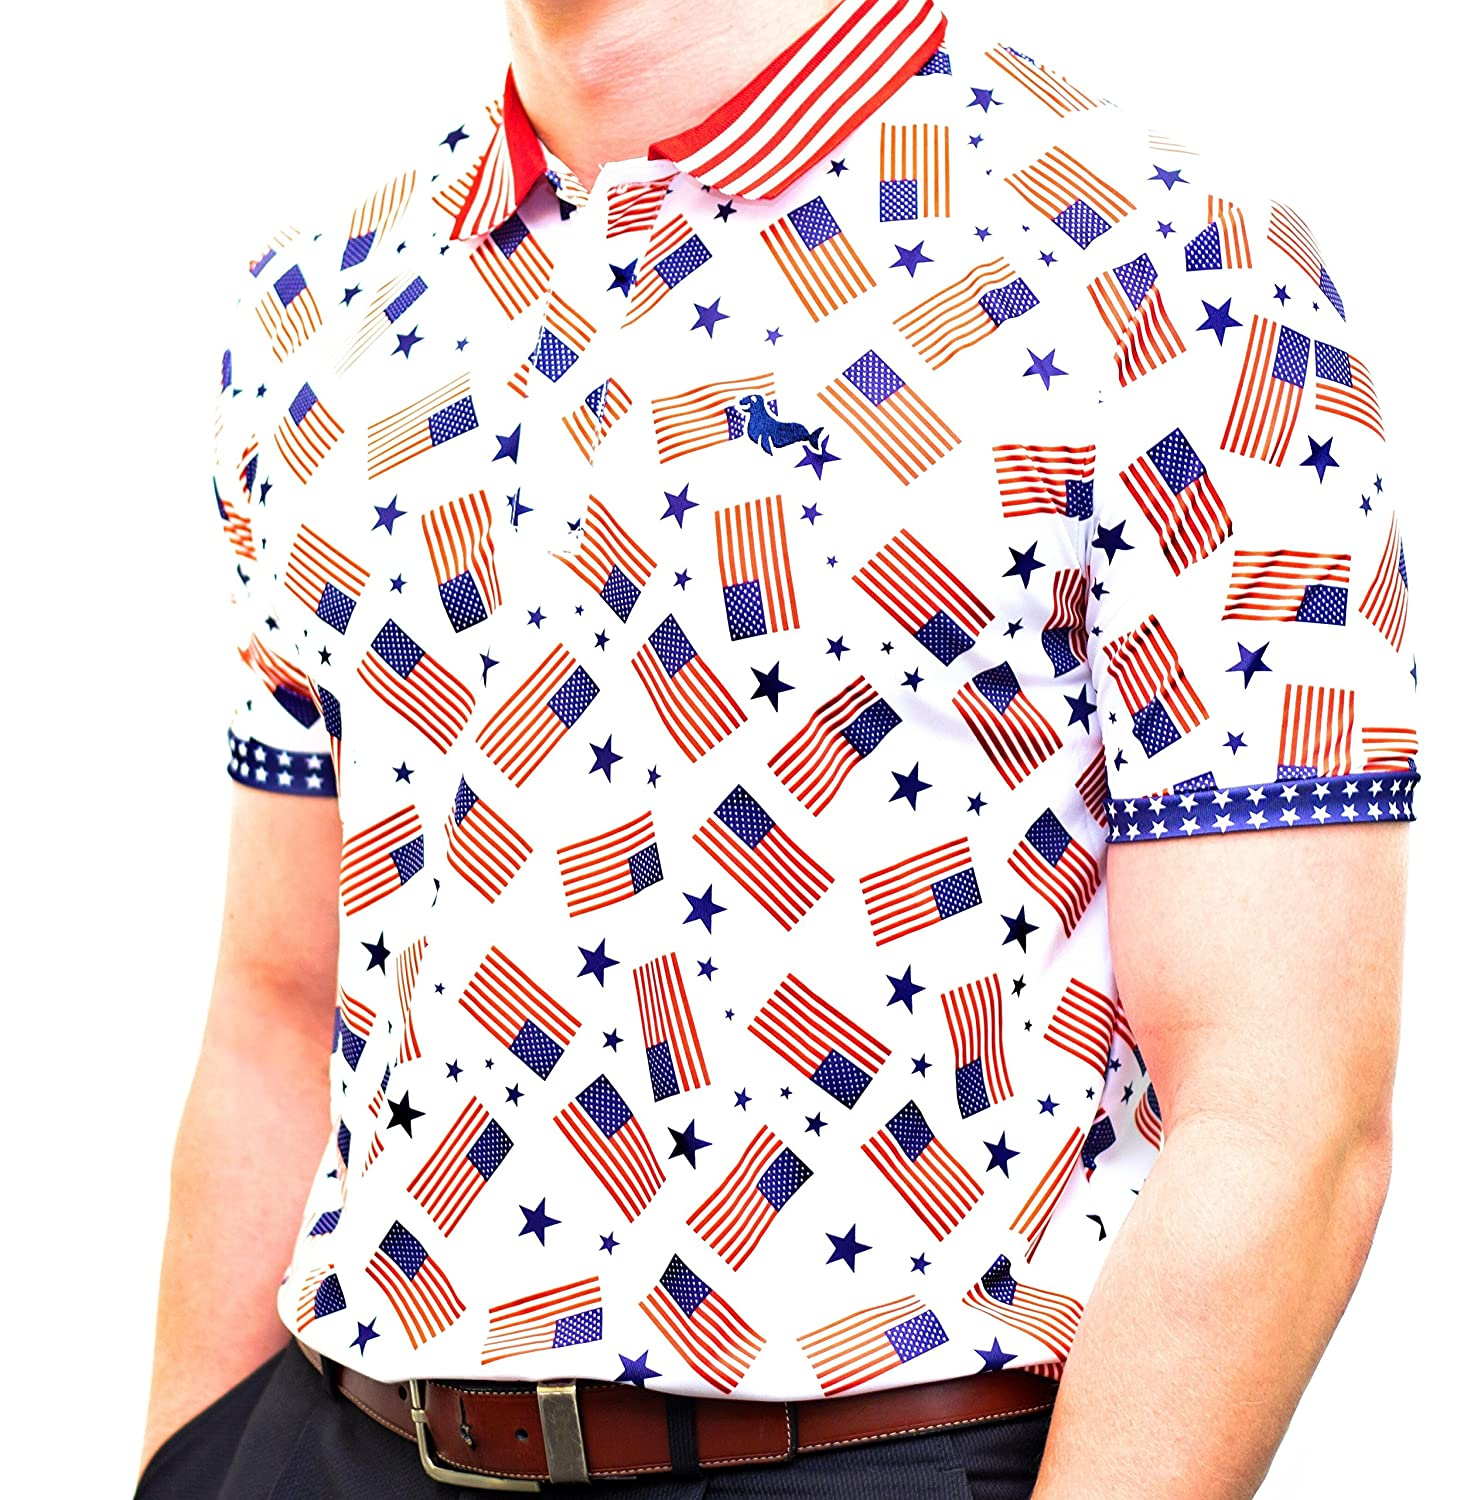 a9ad40f1 ... Men's American Flag Polo Shirt. Wholesale Price:24.50 100% Polyester  Machine Wash, Hang Dry Red, White, and Blue - Stars & Stripes for the USA!